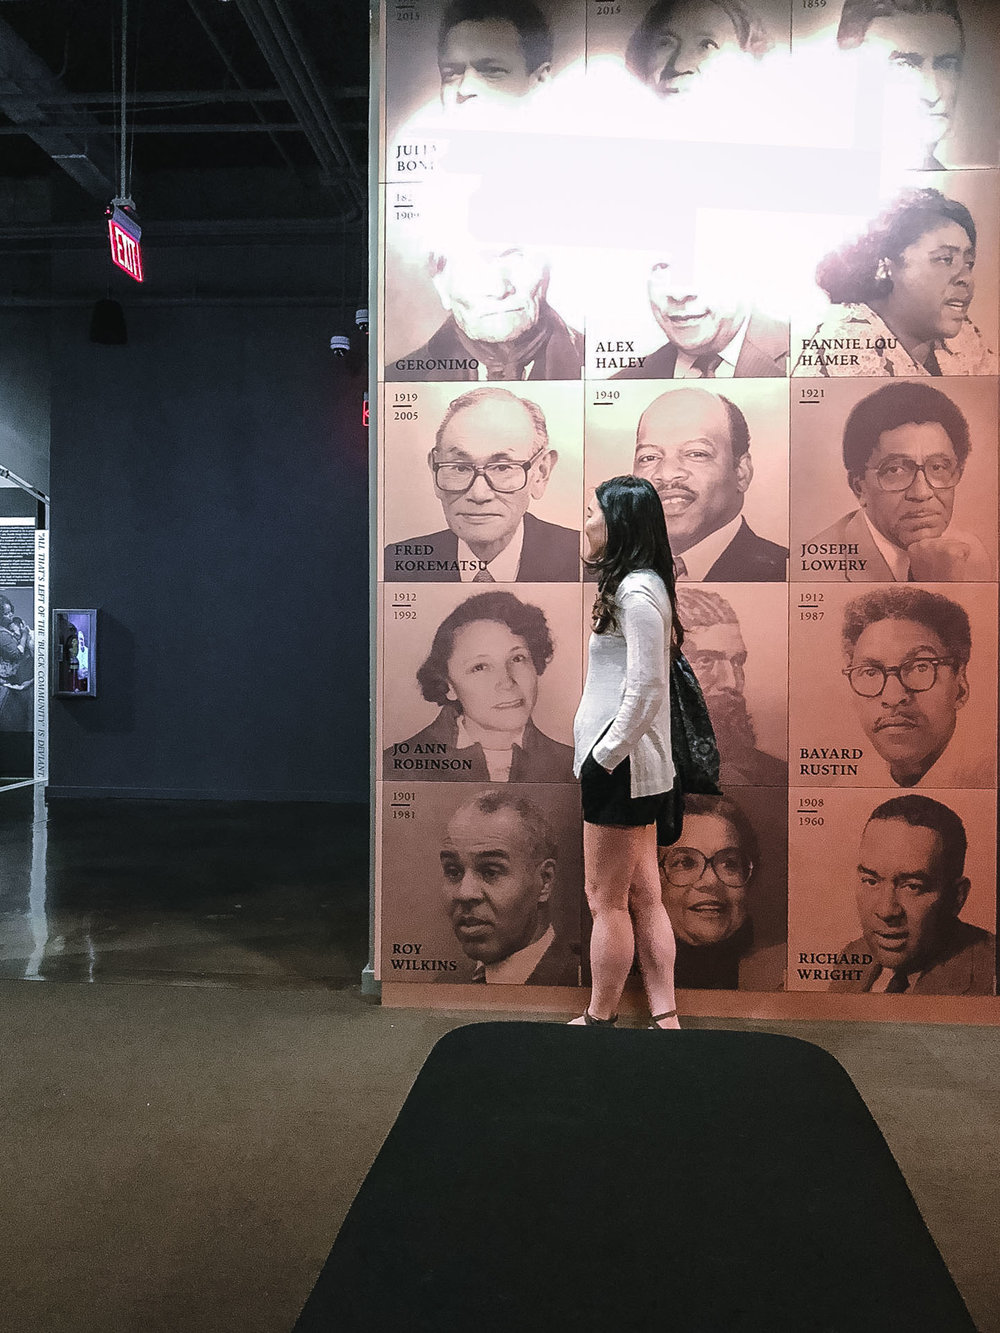 The back of the museum pays tribute to Civil Rights activists throughout history, including Japanese-American activist Fred Korematsu.